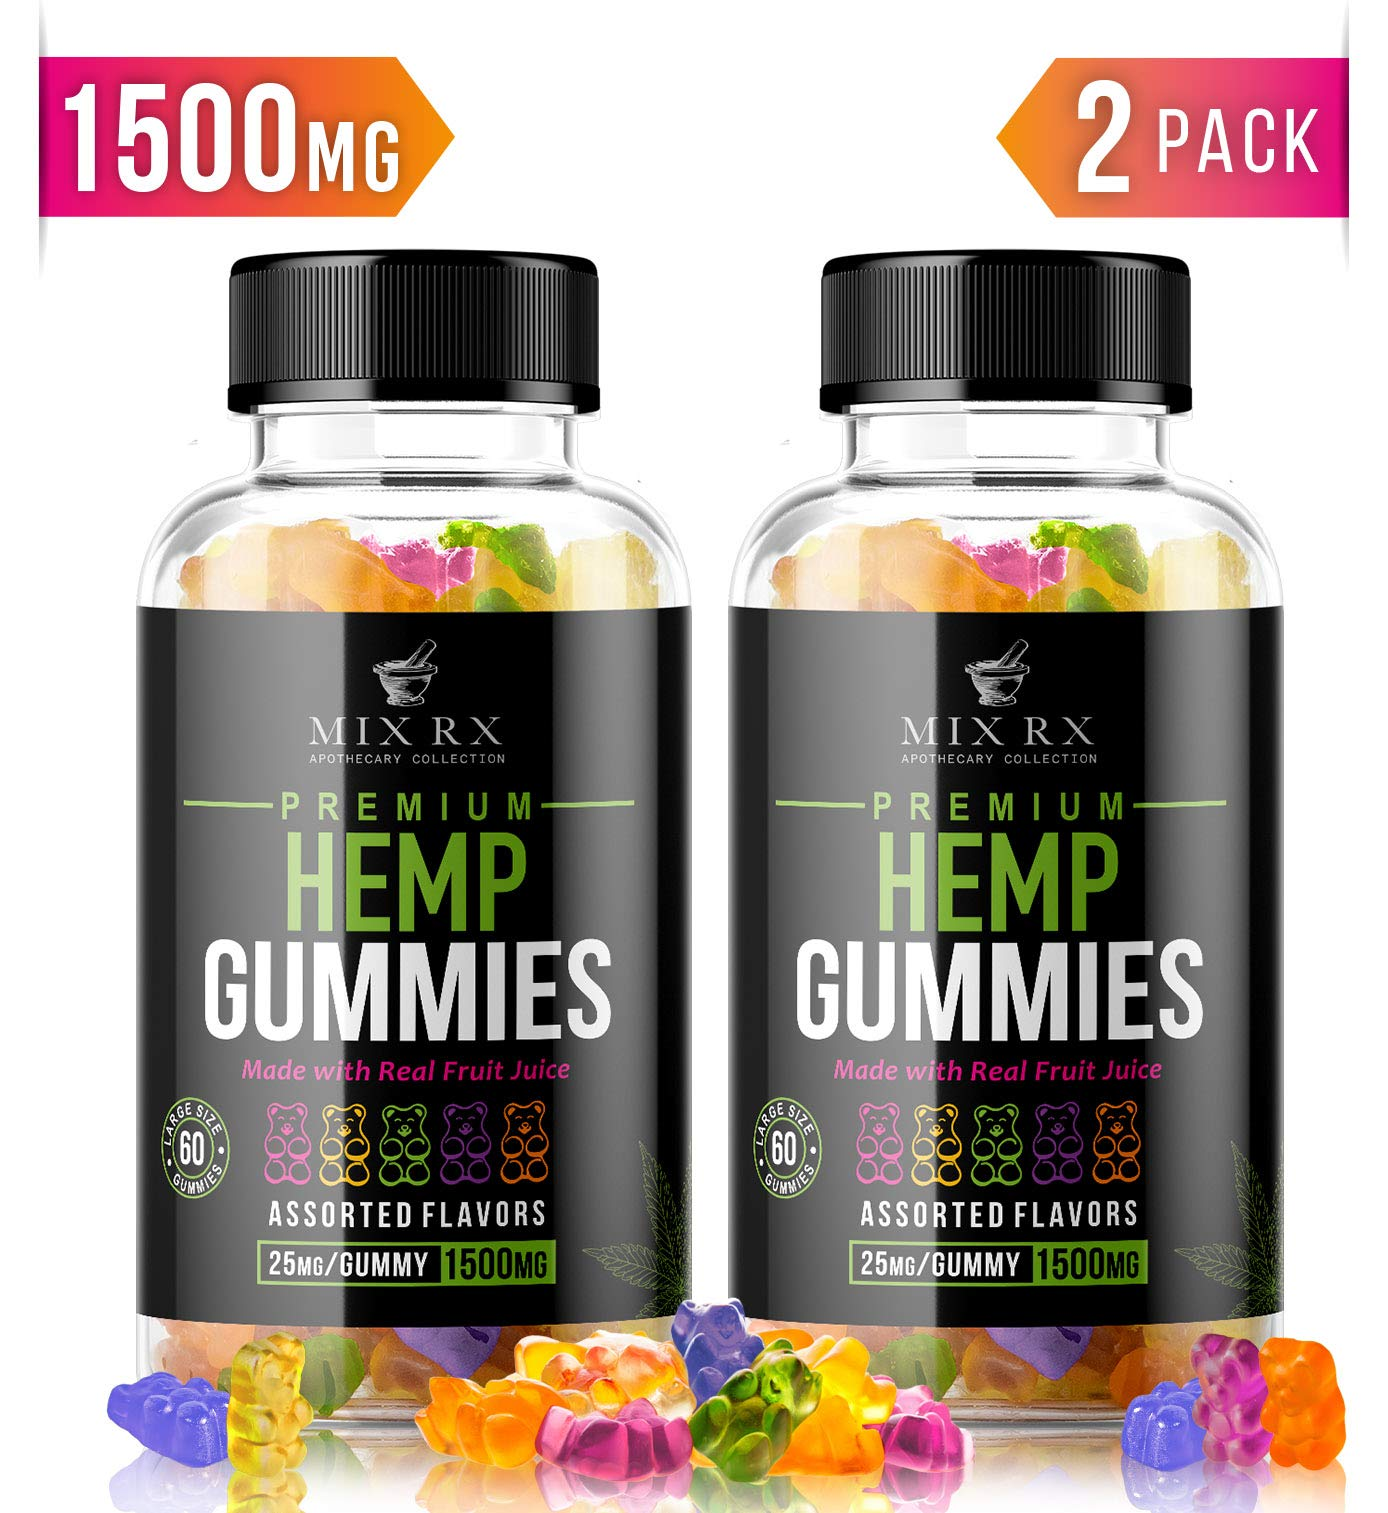 (120 Gummies | 1500mg) Hemp Gummies for Pain and Anxiety Restful Sleep, Natural Calm Hemp Oil Gummy Bears Vitamins Edibles Candy Supplements for Stress Relief - Giant Gummie Bears for Adults Kids by Mix Rx